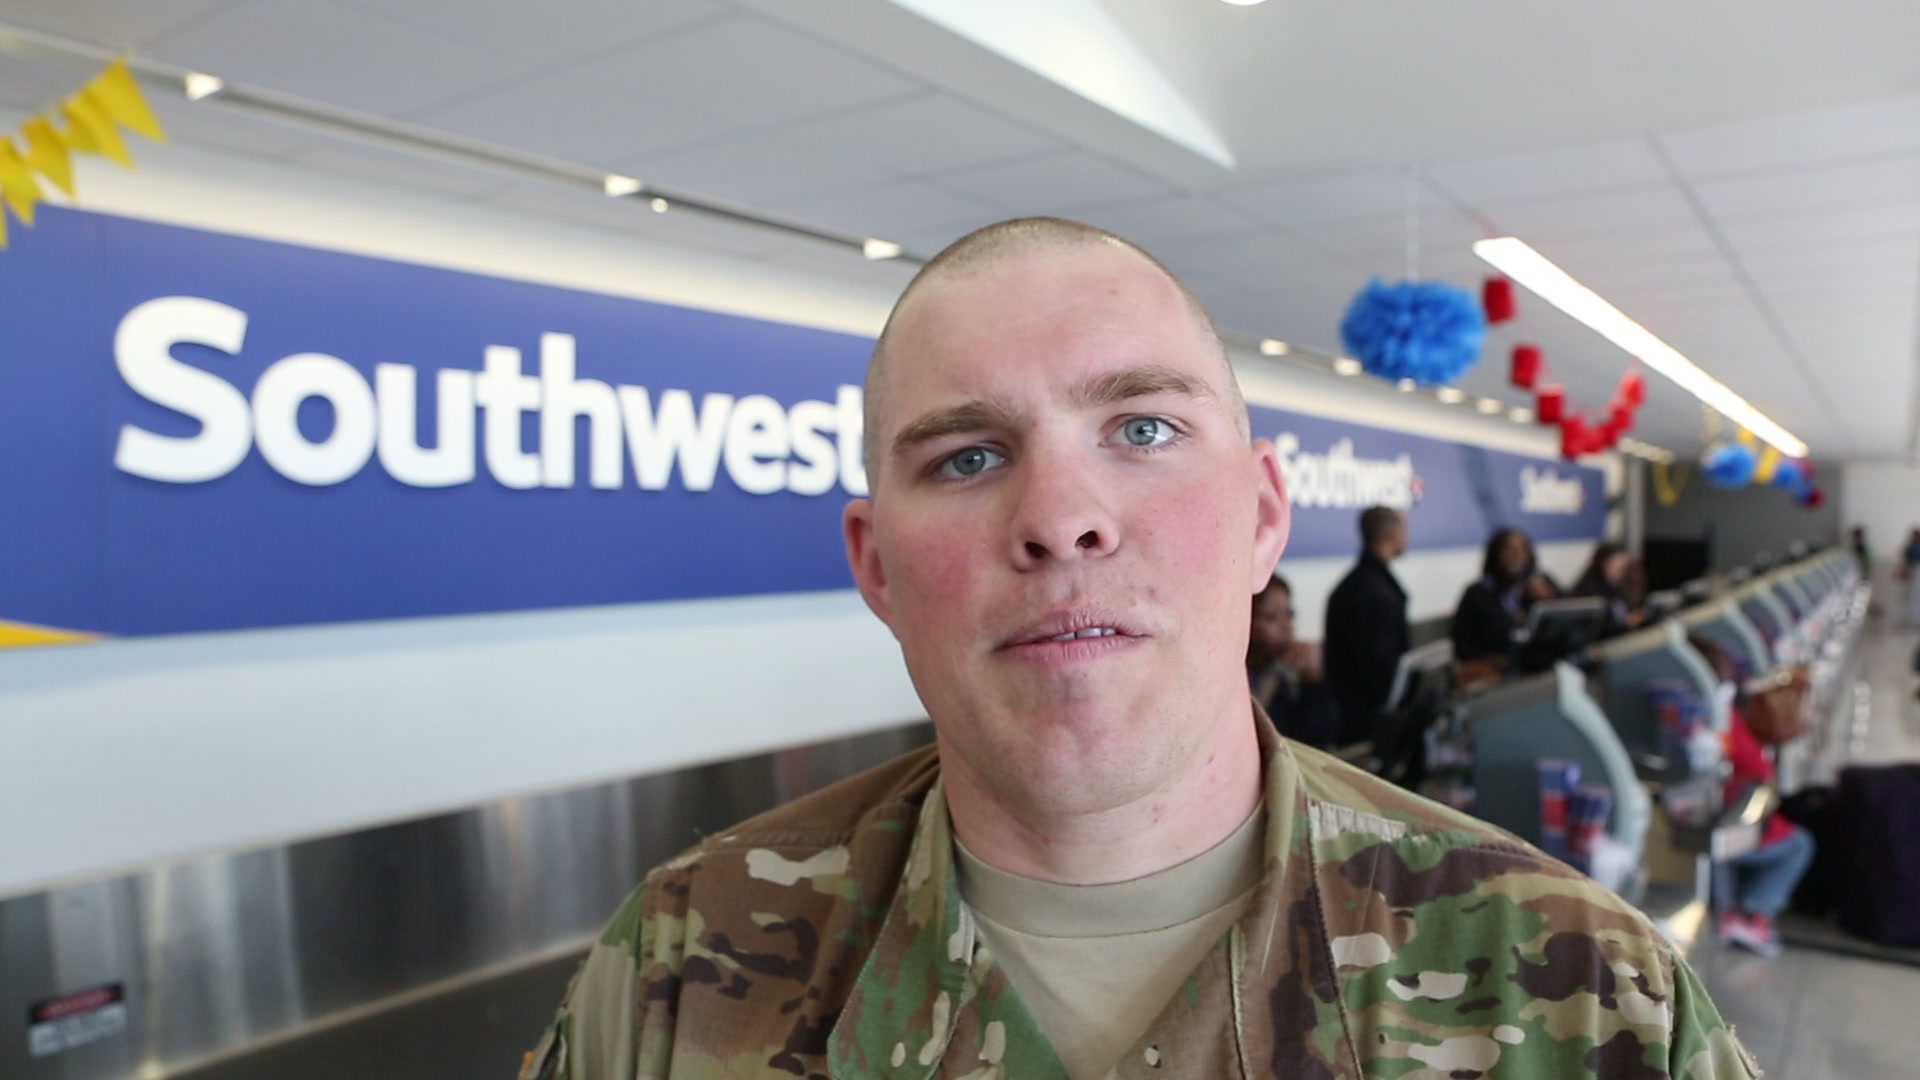 The Southwest Airlines team at BWI hosted U.S. Army SGT Clarence Dompierre on Wednesday, April 20 for his second reenlistment ceremony